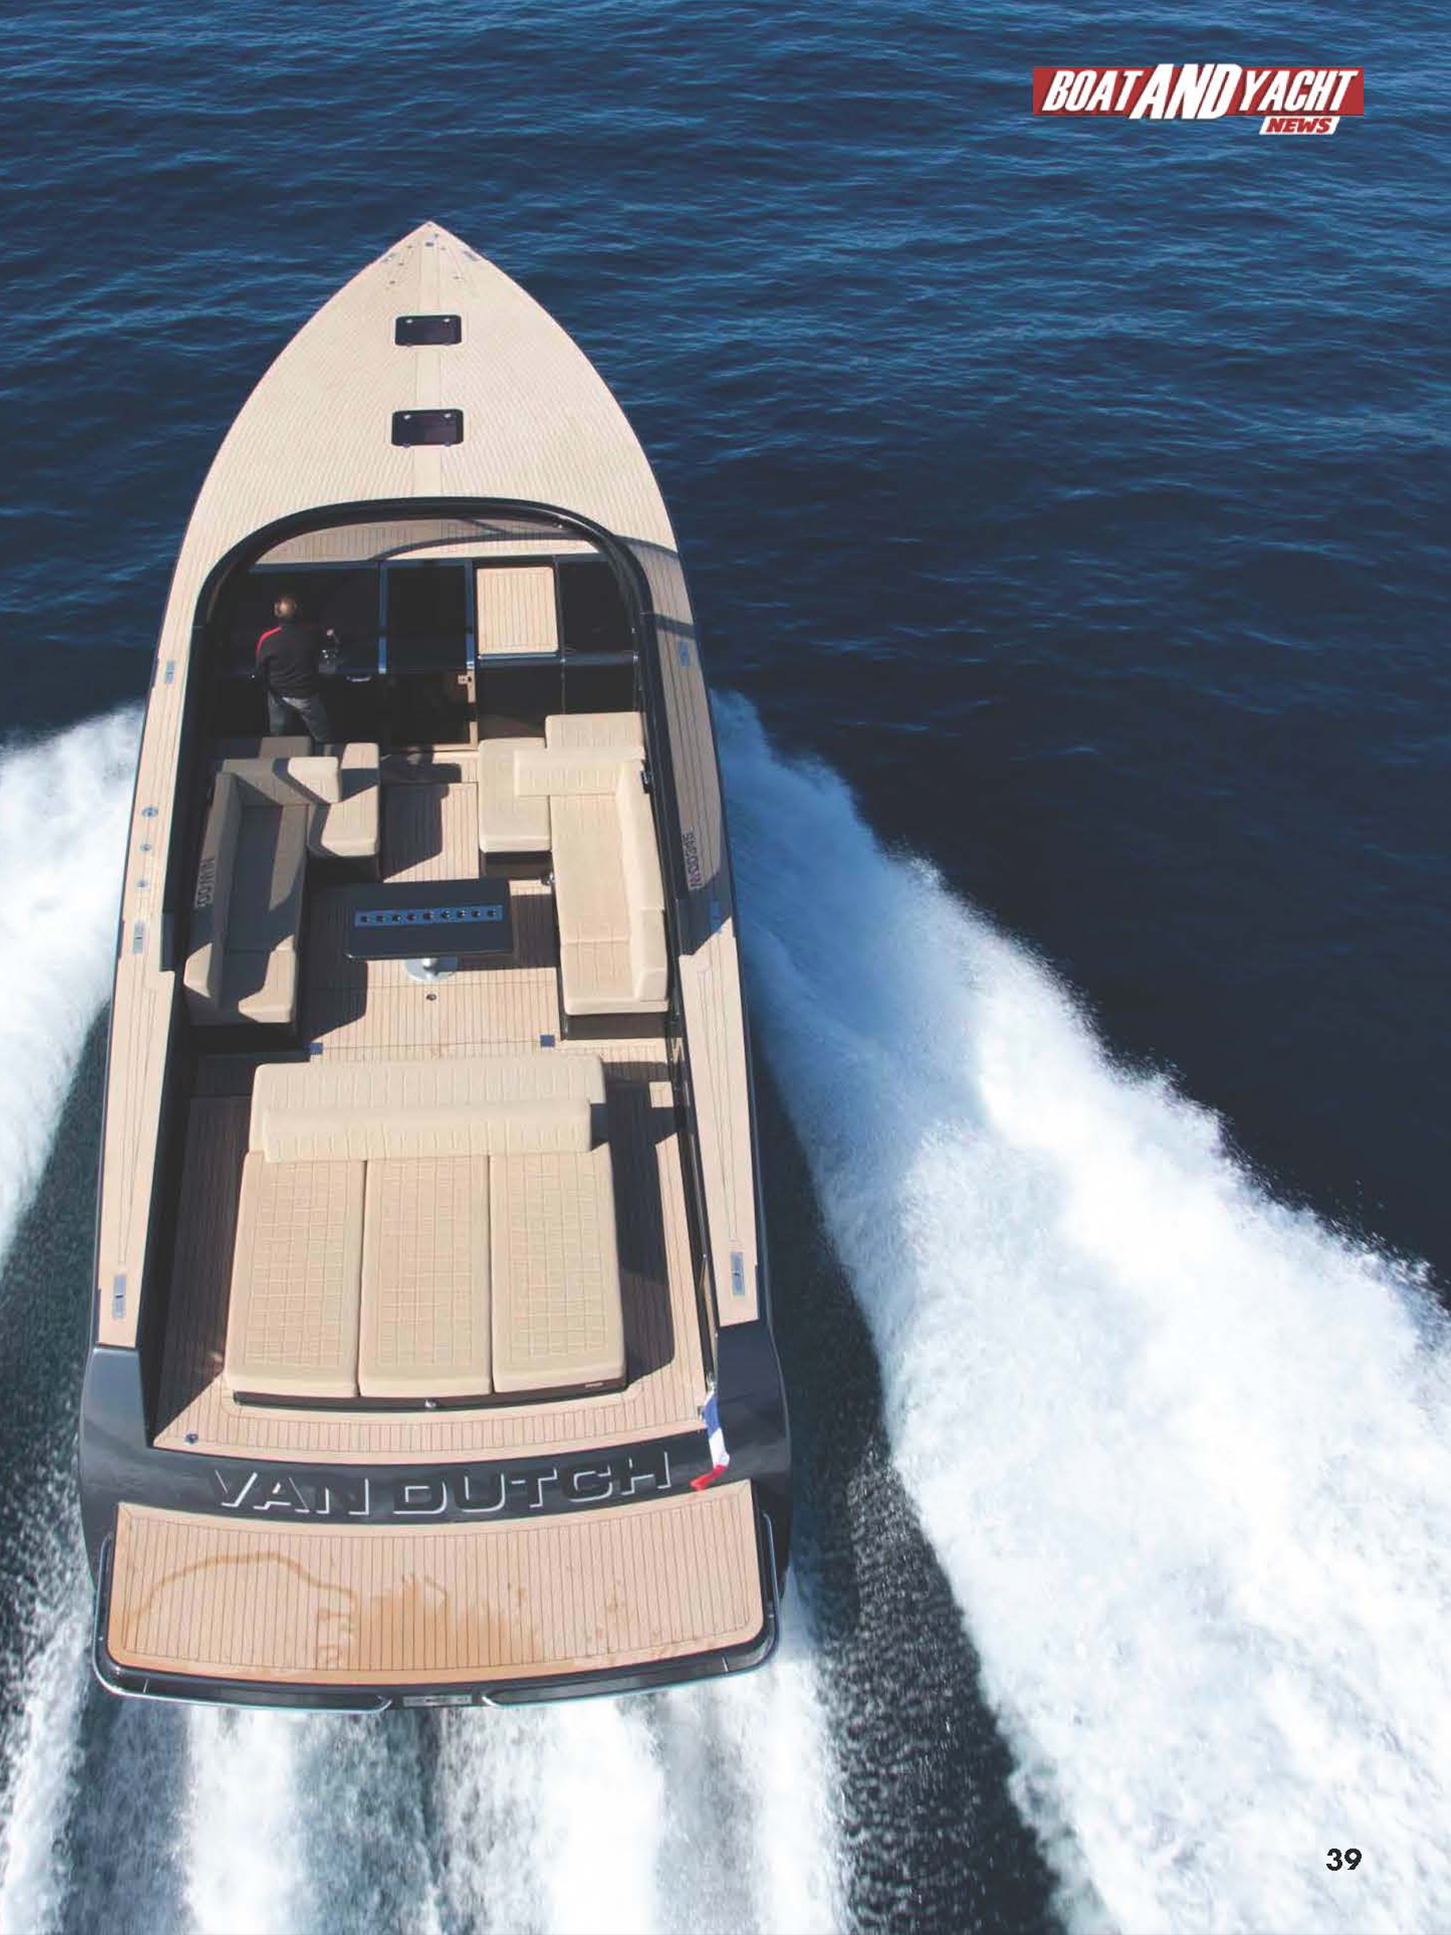 boat-and-yacht-04-225x300